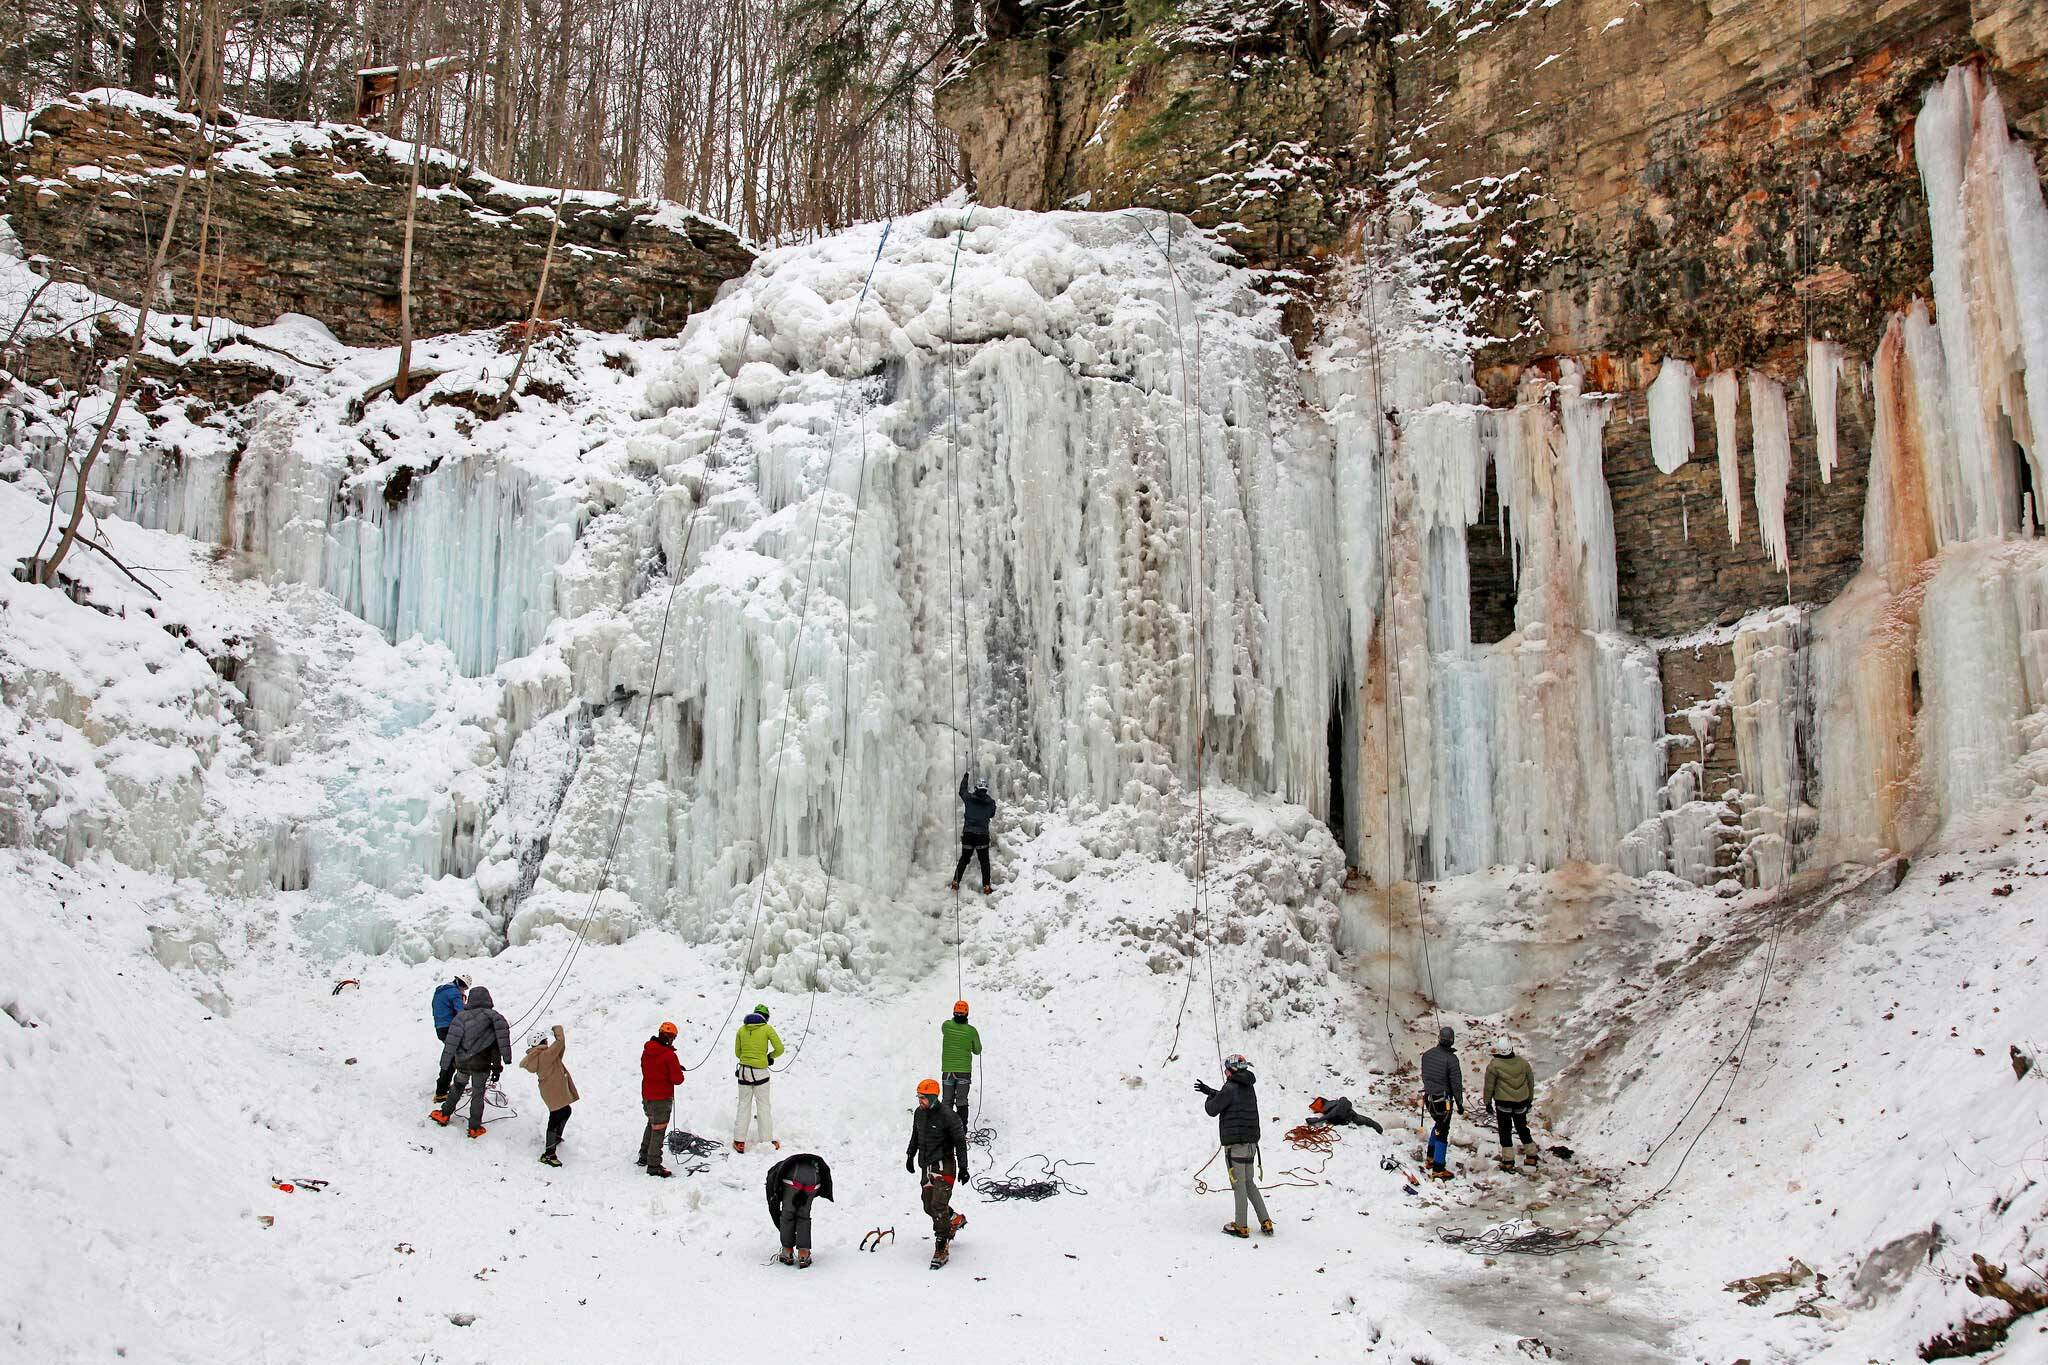 50 things to do with kids this winter in Toronto |Toronto Winter Sports